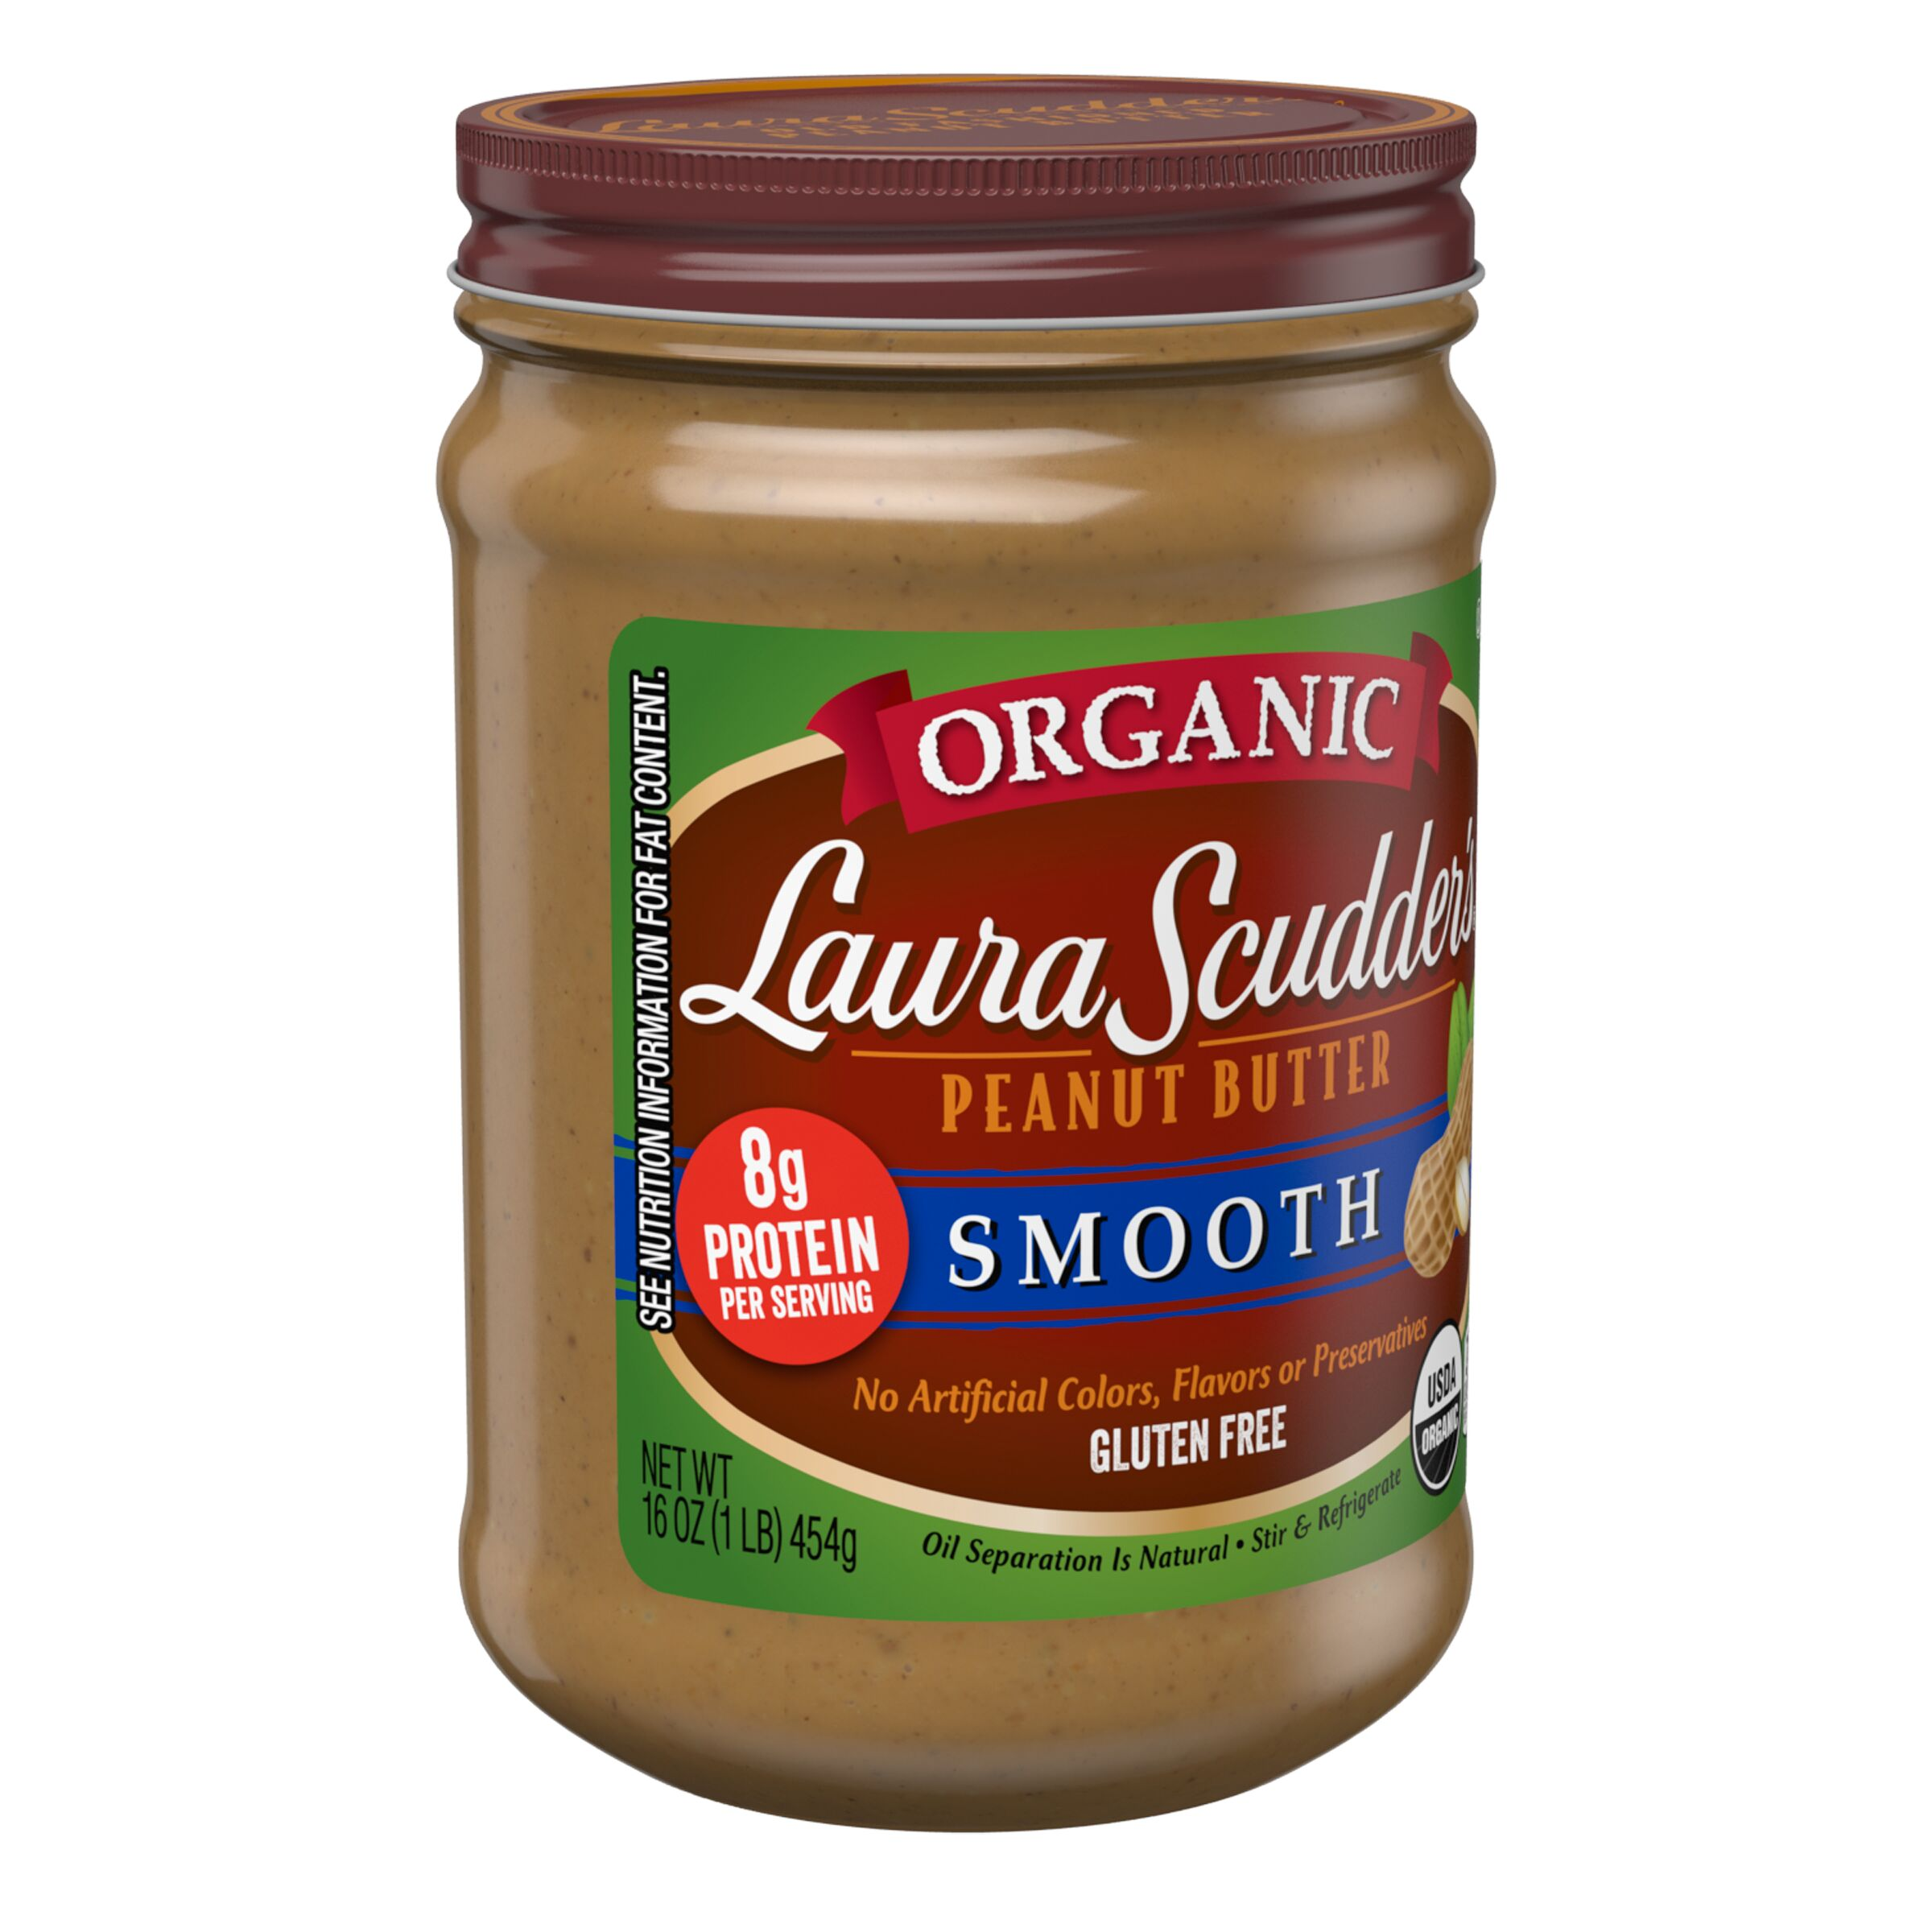 Laura Scudder's  Organic Smooth Peanut Butter